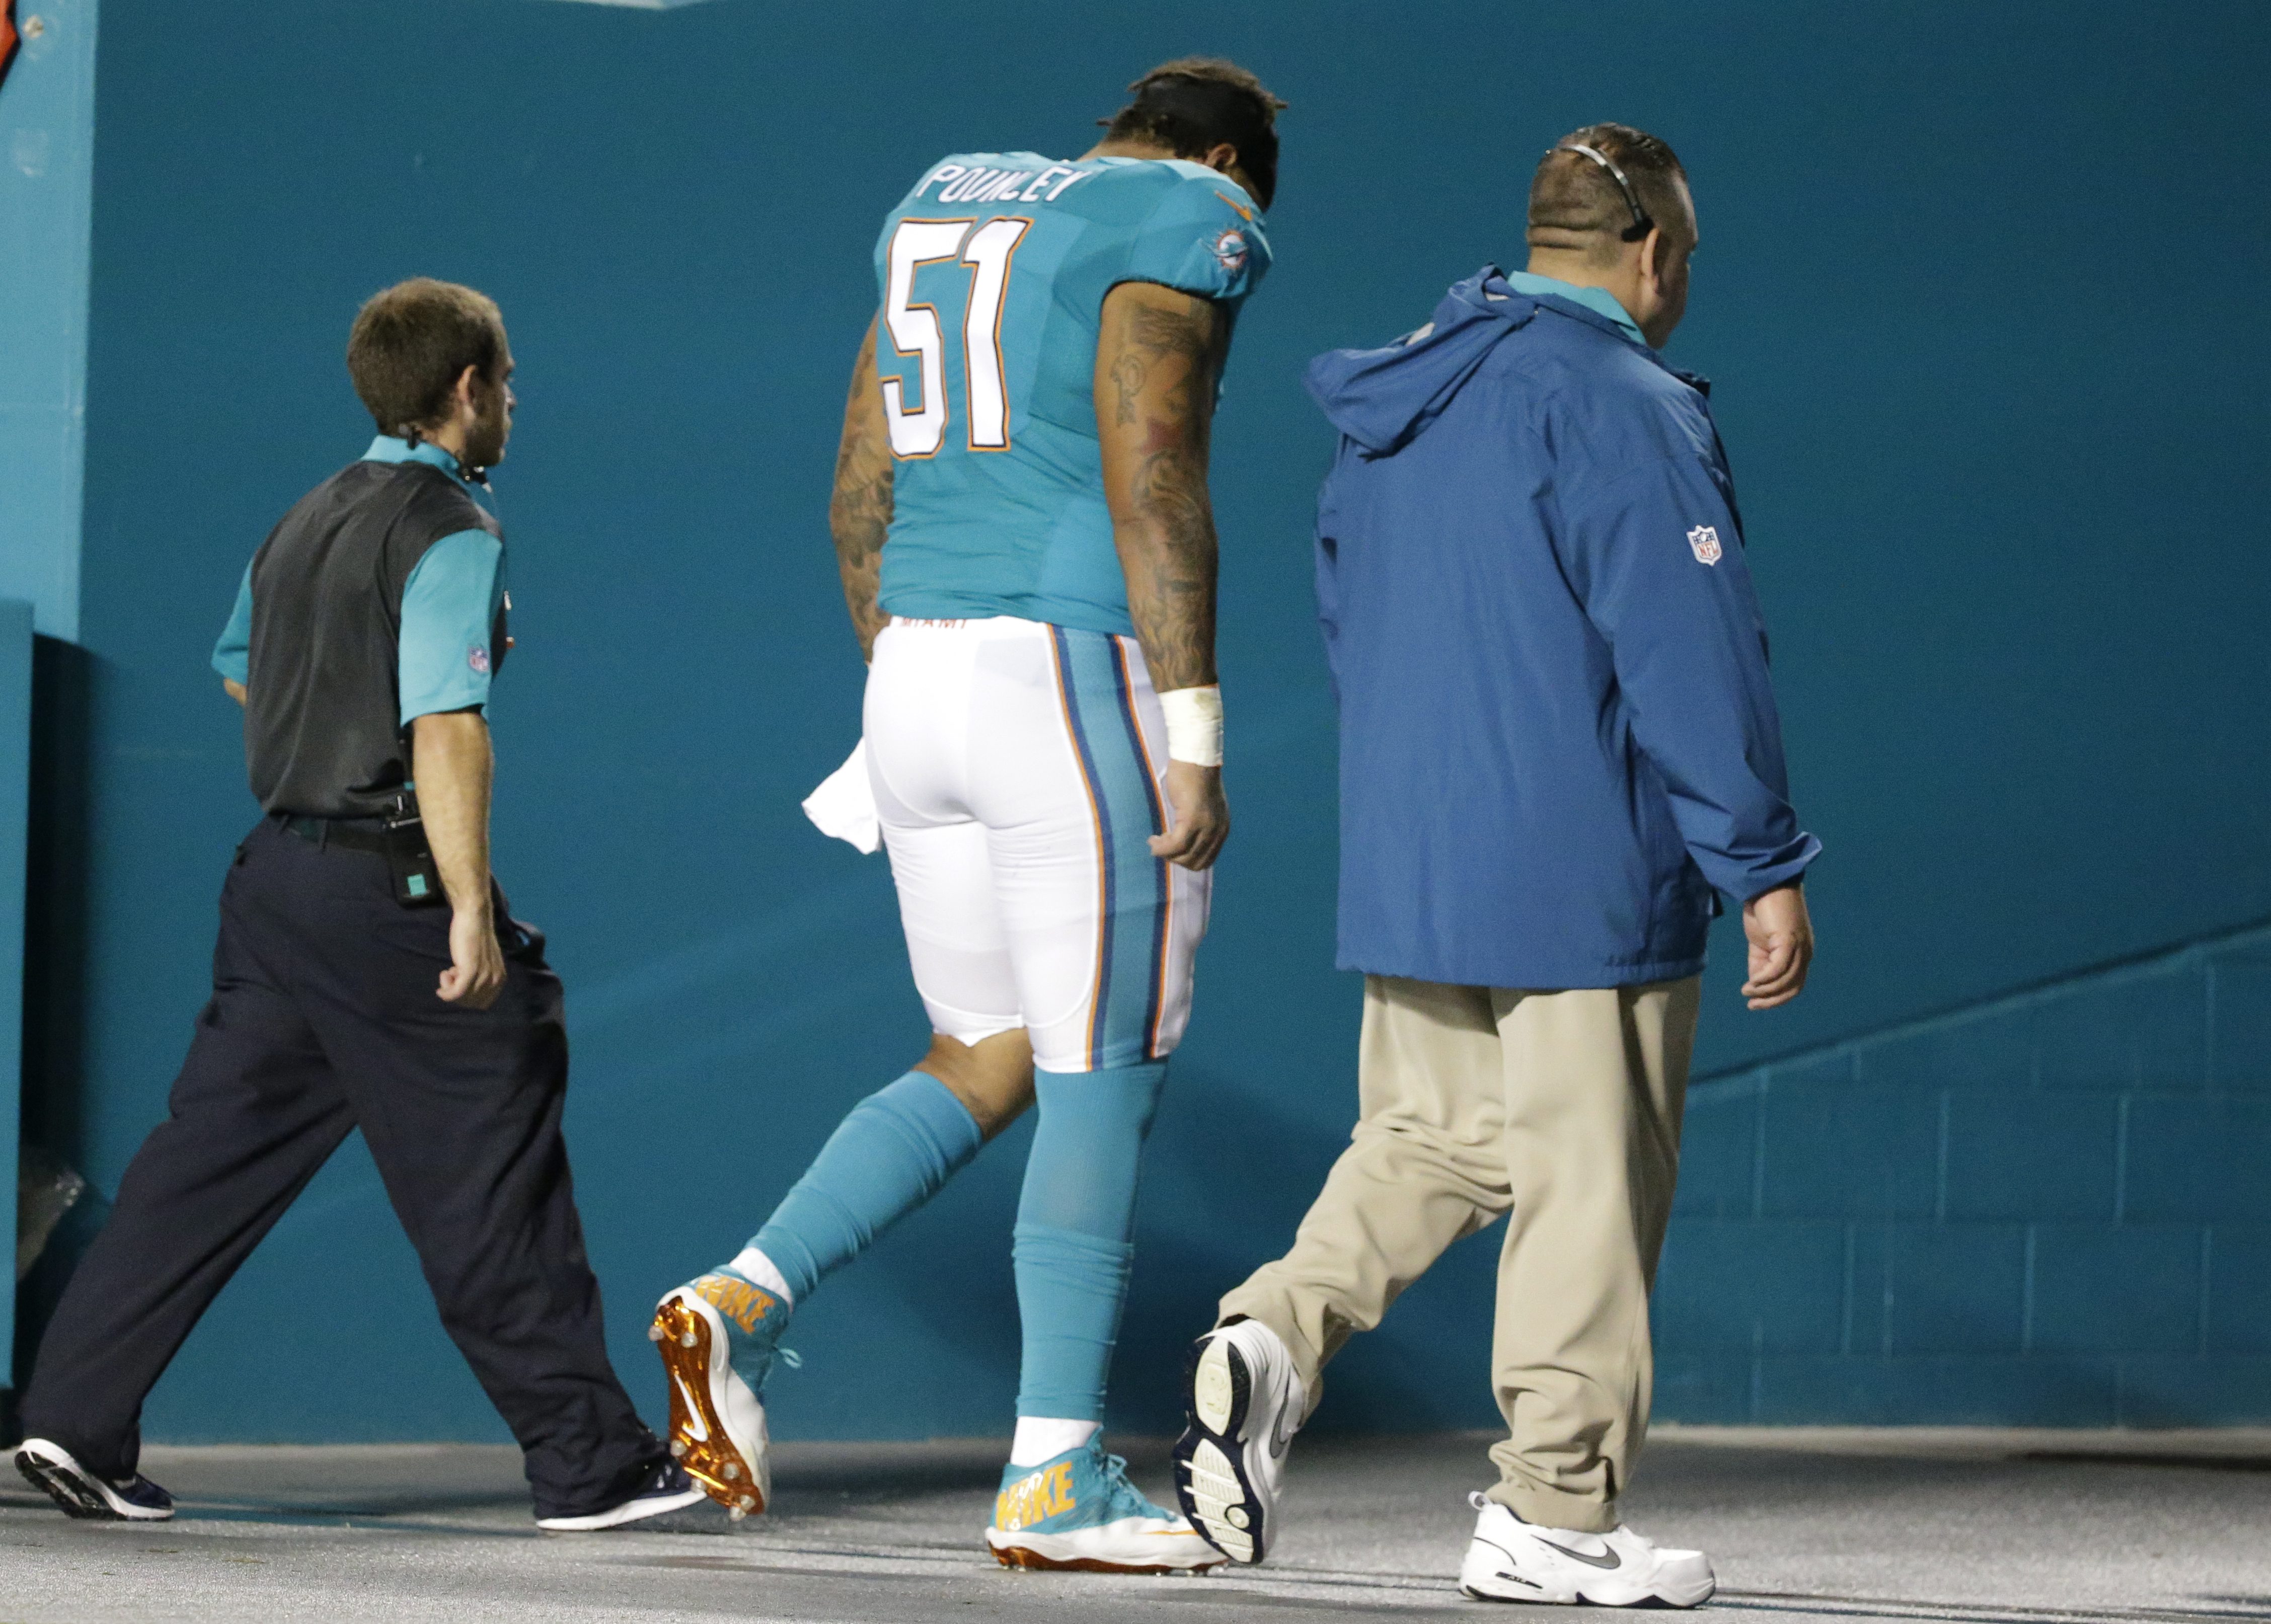 Miami Dolphins guard Mike Pouncey (51) is lead off the field during the first half of an NFL preseason football game against the Atlanta Falcons, Saturday, Aug. 29, 2015 in Miami Gardens, Fla. (AP Photo/Wilfredo Lee)